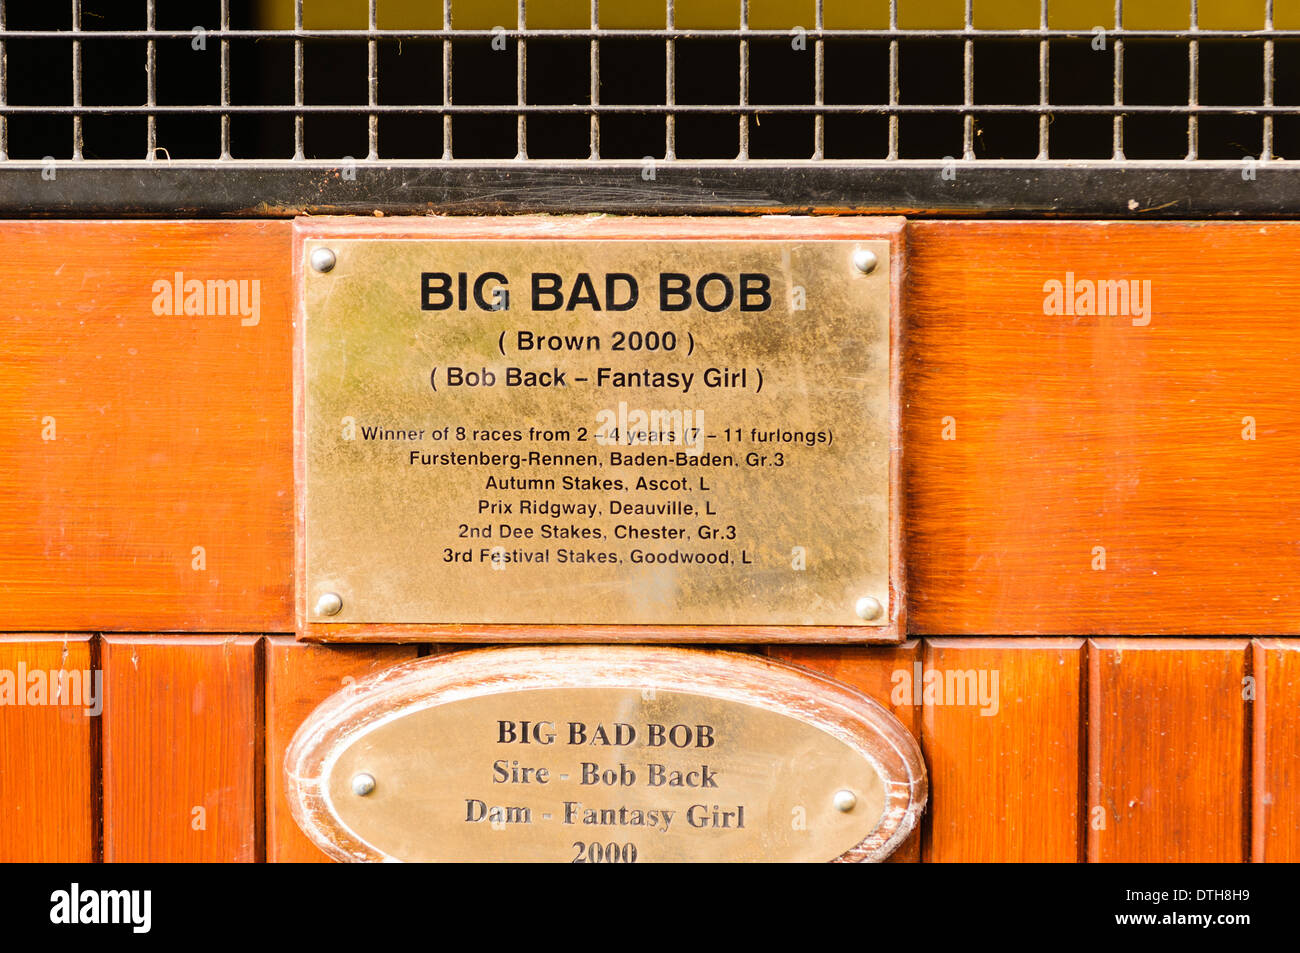 Nameplate for Big Bad Bob stud horse at the Irish National Stud. - Stock Image